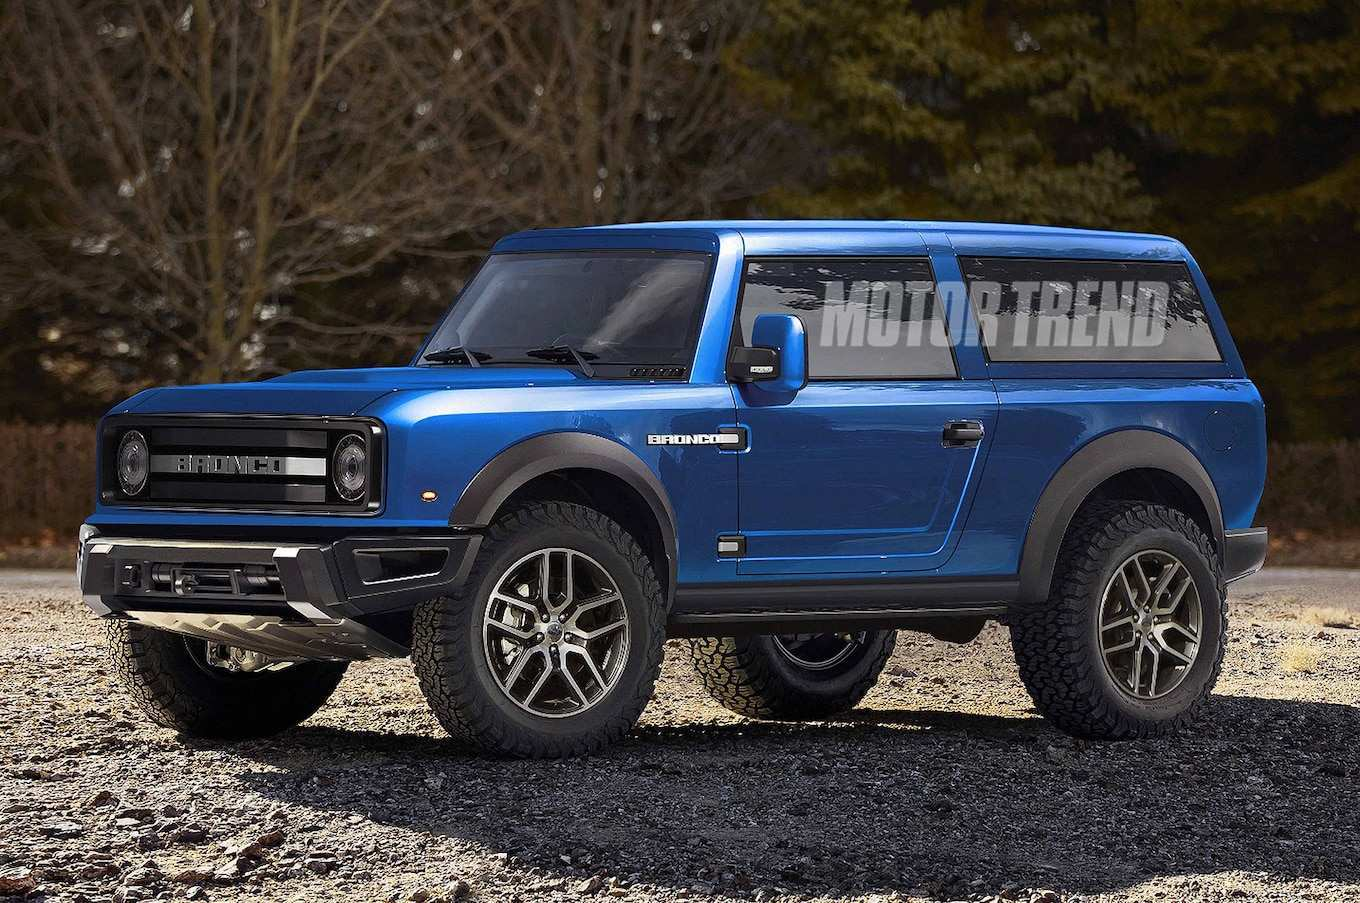 89 New When Can You Buy A 2020 Ford Bronco Images with When Can You Buy A 2020 Ford Bronco